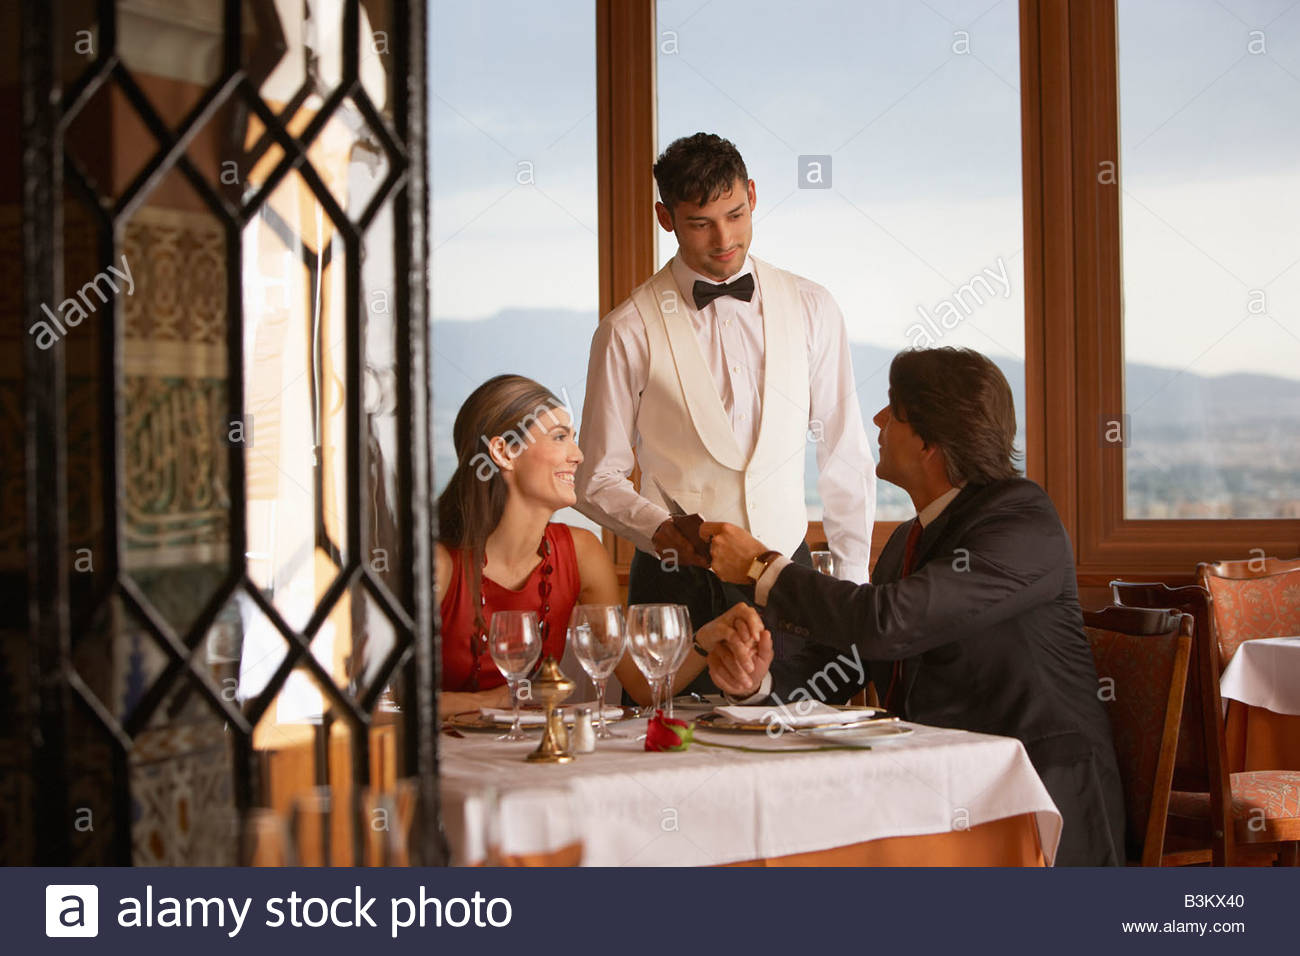 Waiter serving couple in elegant restaurant Stock Photo